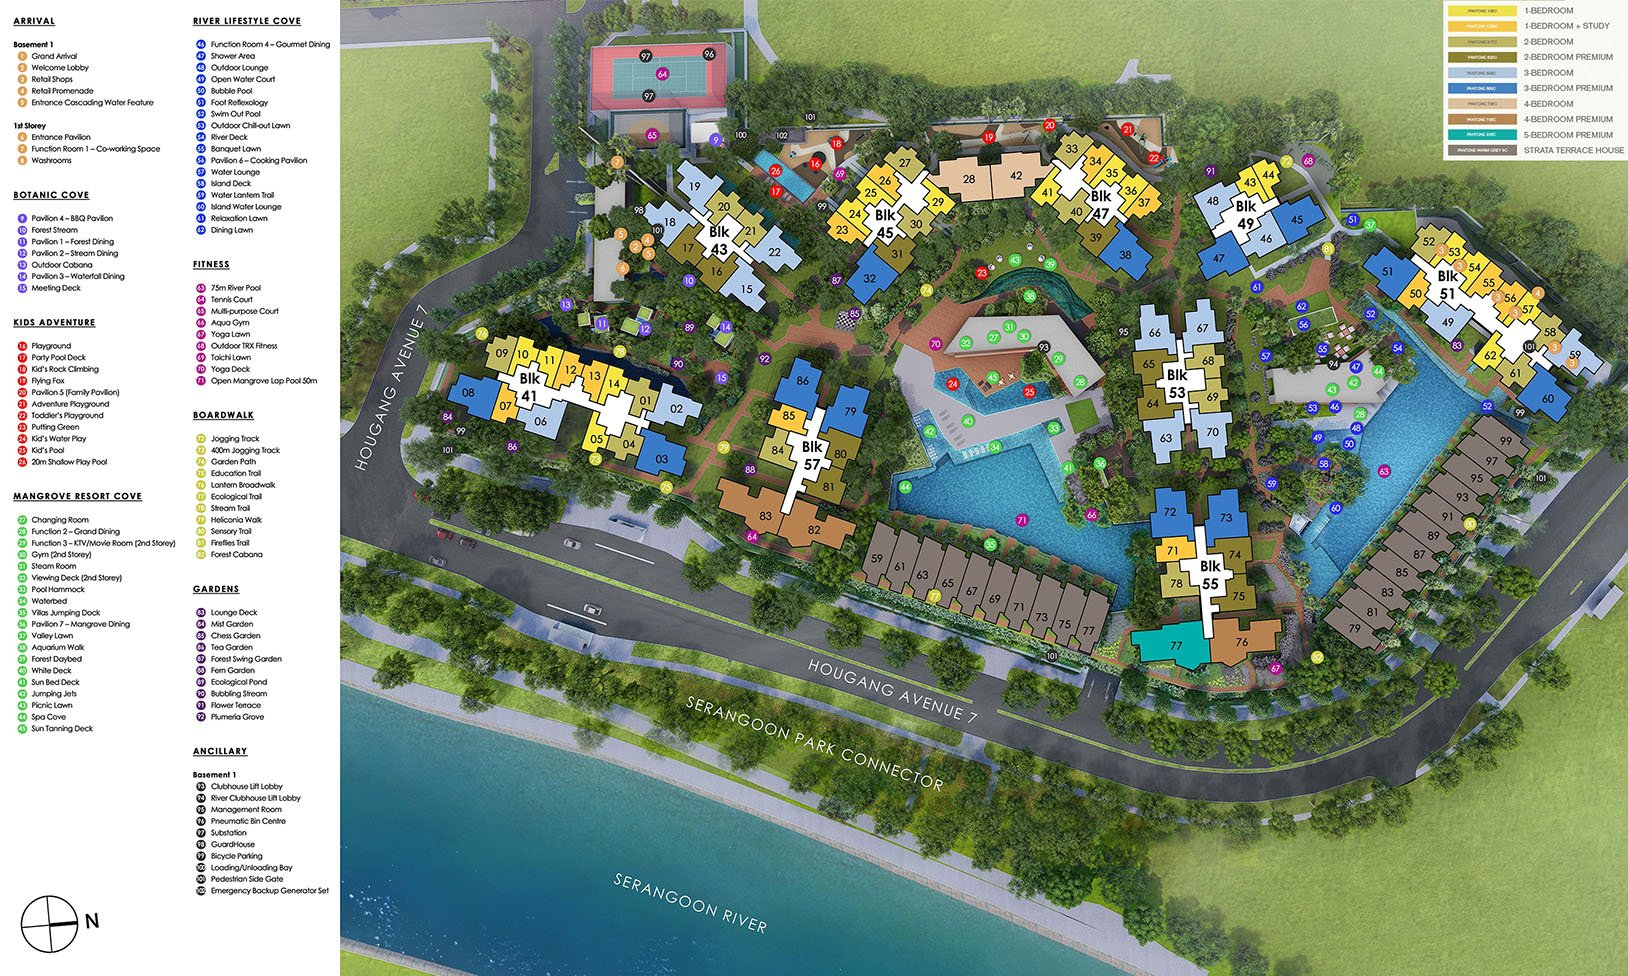 Riverfront Residences Facilities Site Plan